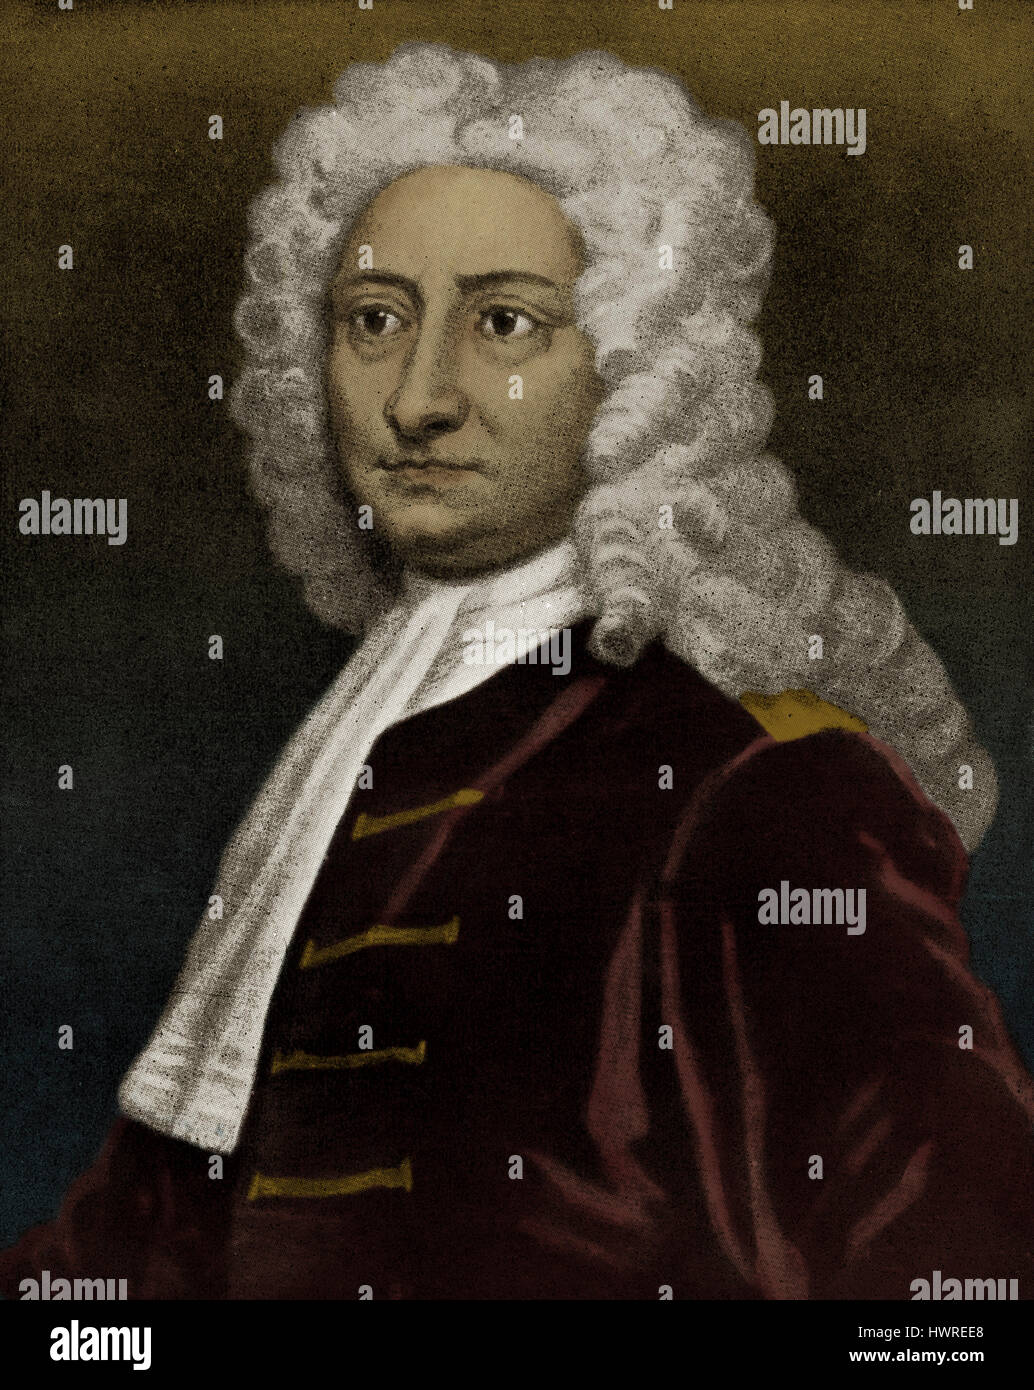 Edmund Halley. English astronomer, geophysicist, mathematician, meteorologist, and physicist. Computed the orbit - Stock Image